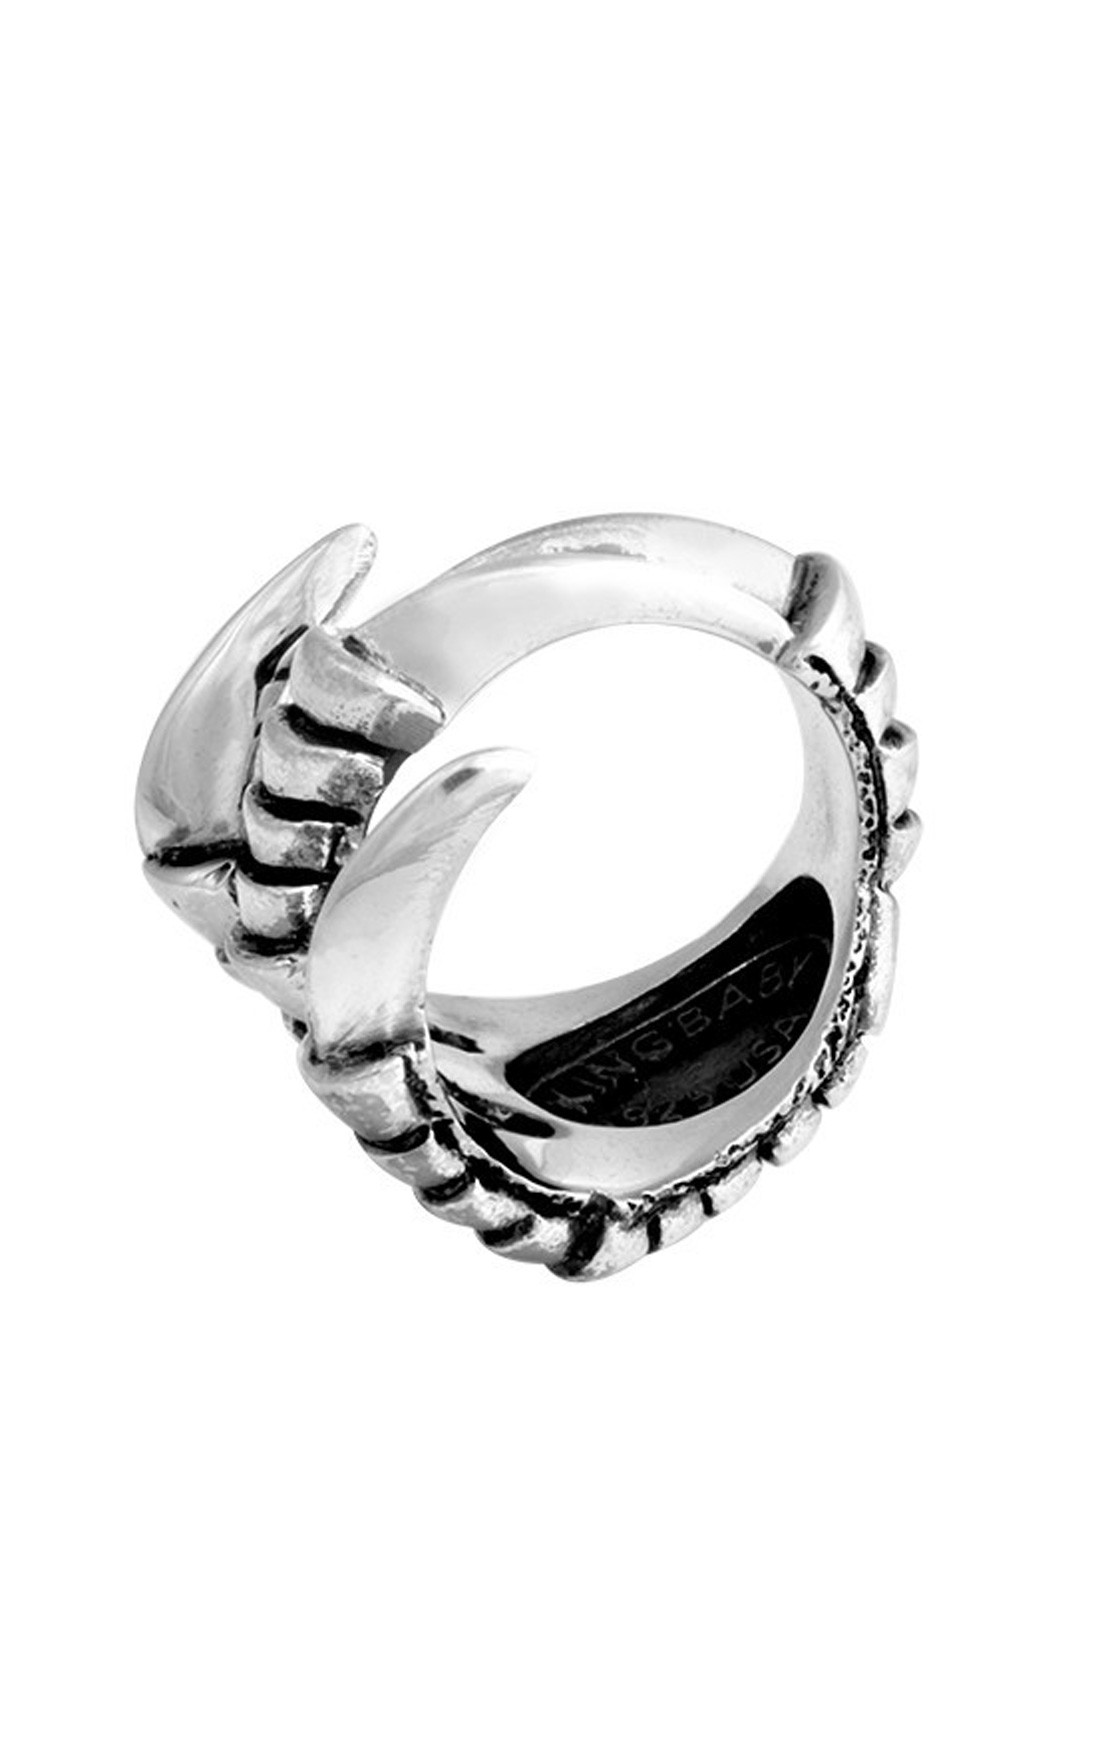 King Baby - Raven Claw Ring (K20-5720)